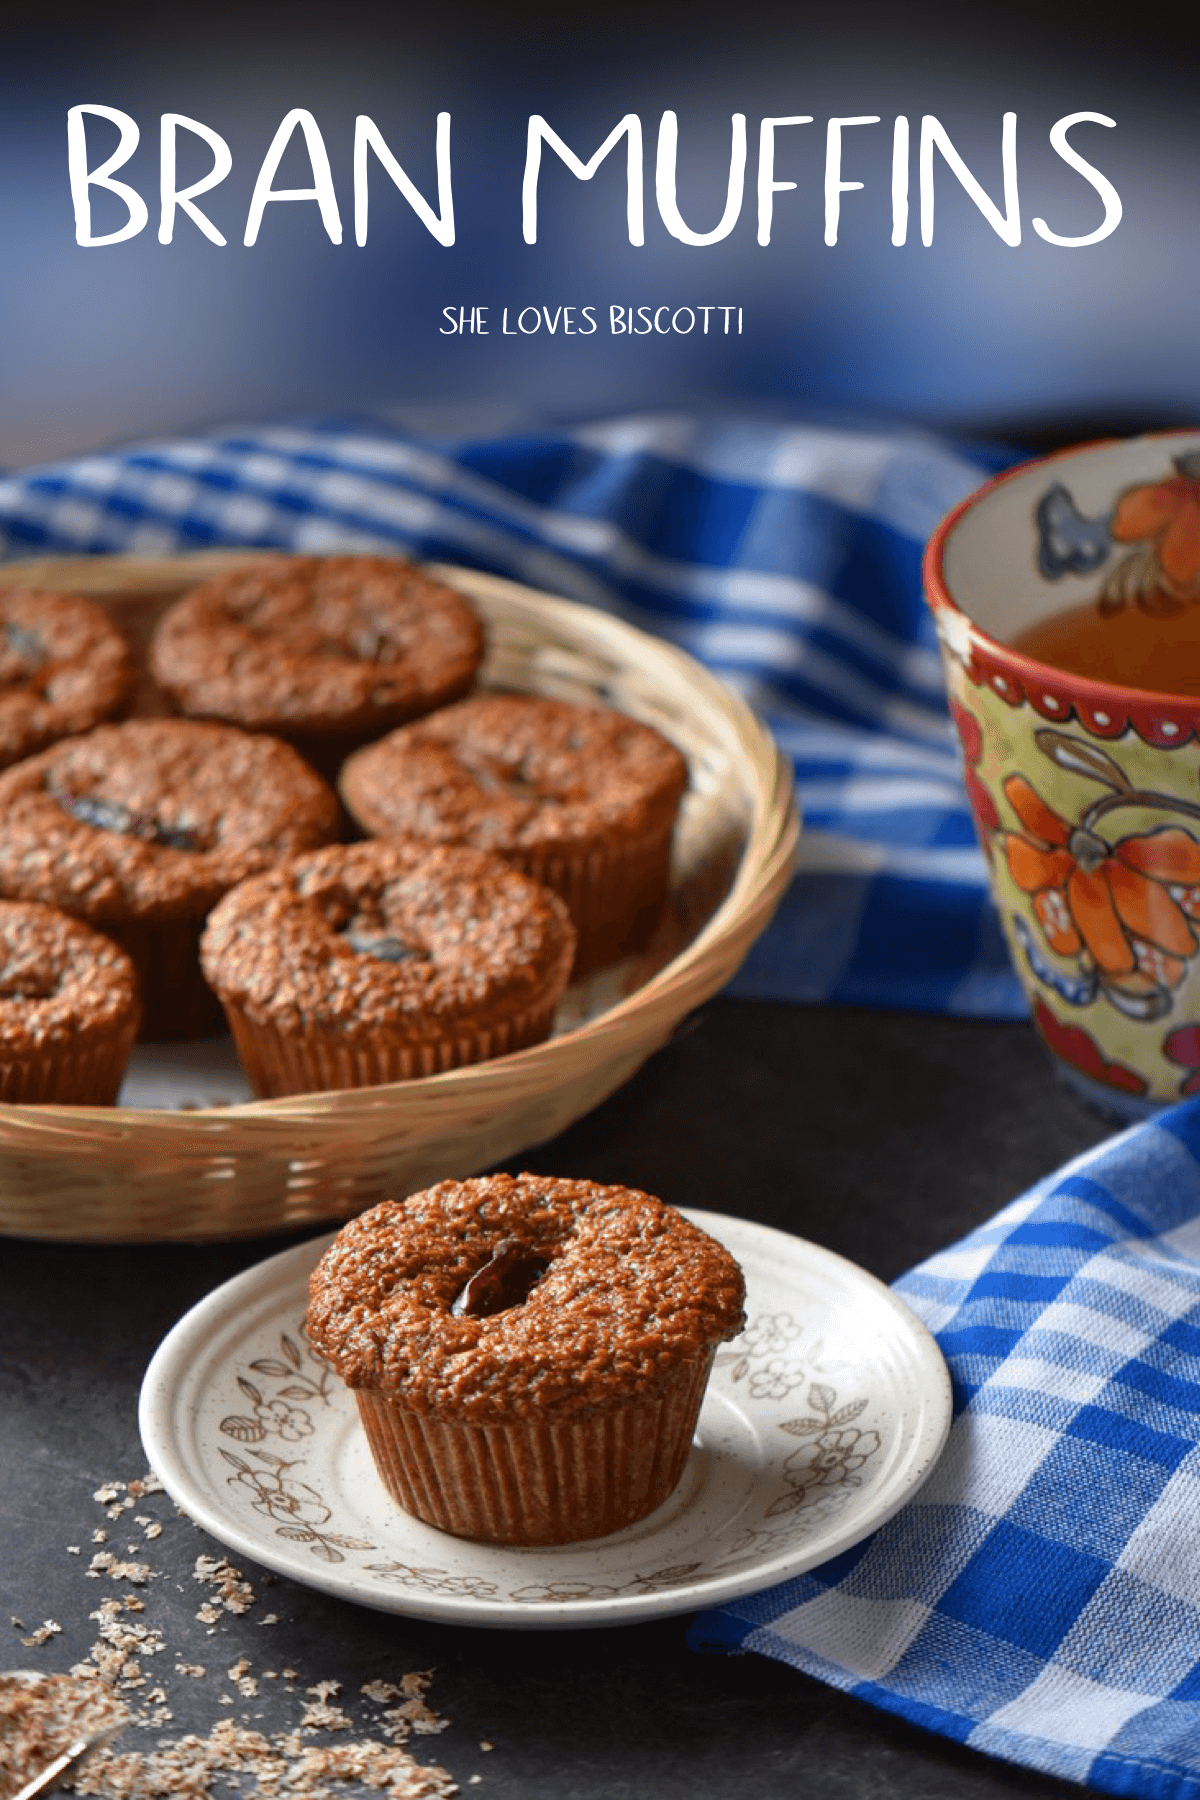 Surprisingly Amazing Date Bran Muffins || Easy Bran Muffin recipe || Healthy Bran Muffin Recipe || Quick Bread Bran Muffin Recipe #branmuffin #branrecipe #easymuffinrecipe #easymuffin #healthymuffin #datebranmuffin #muffins #easyrecipe